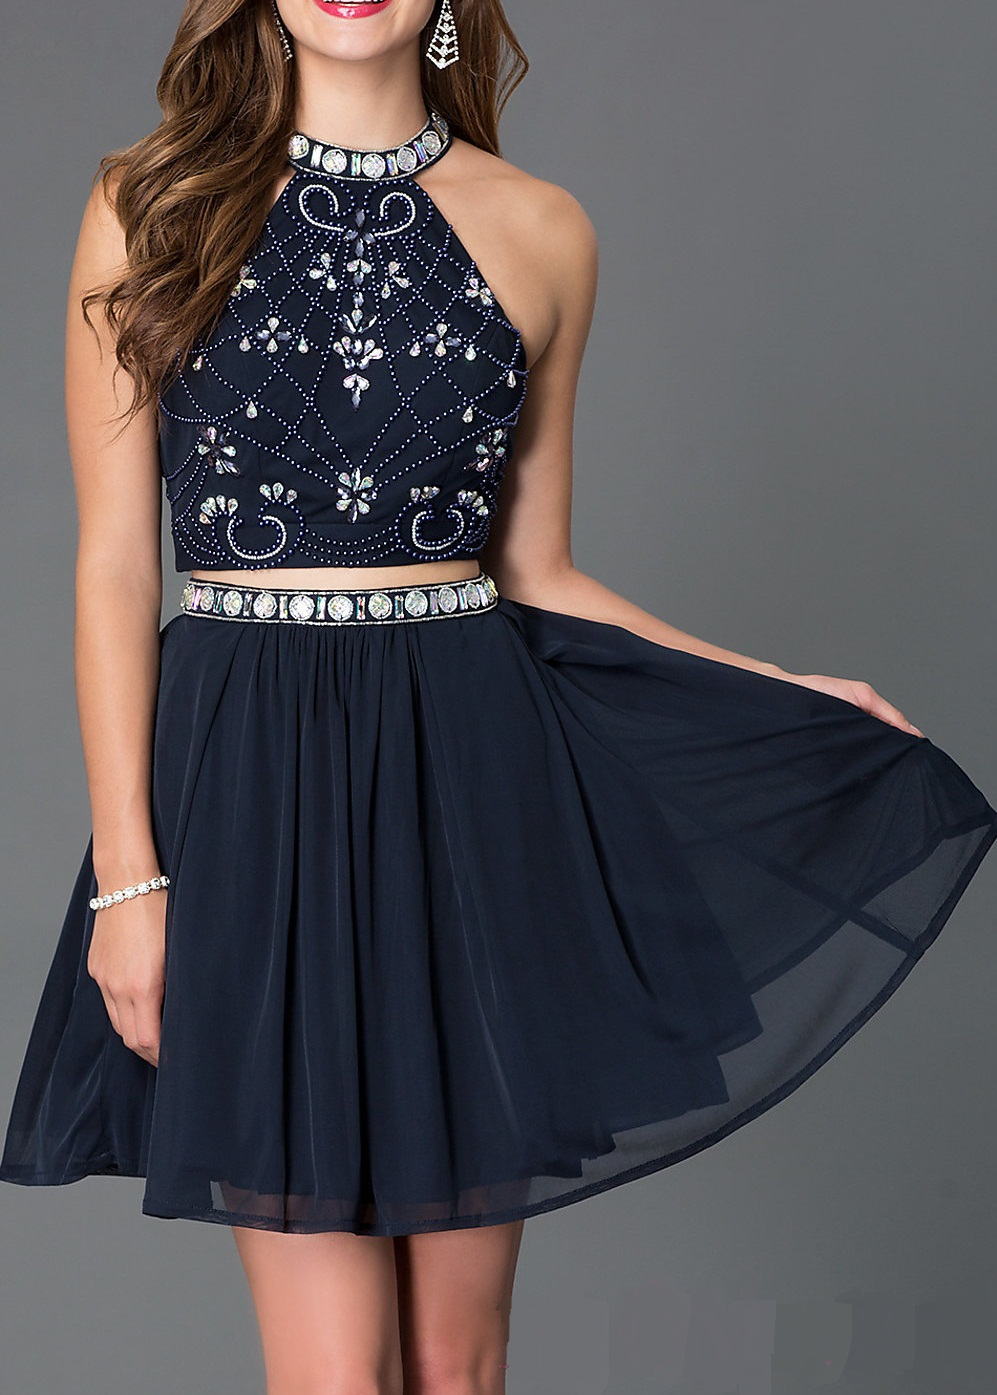 Buy 2019 Attractive 2 Piece Halter Beading Short Graduation Dresses Strapless Zip Back Sleeveless Homecoming Cocktail Party Dress for only 114.49 USD